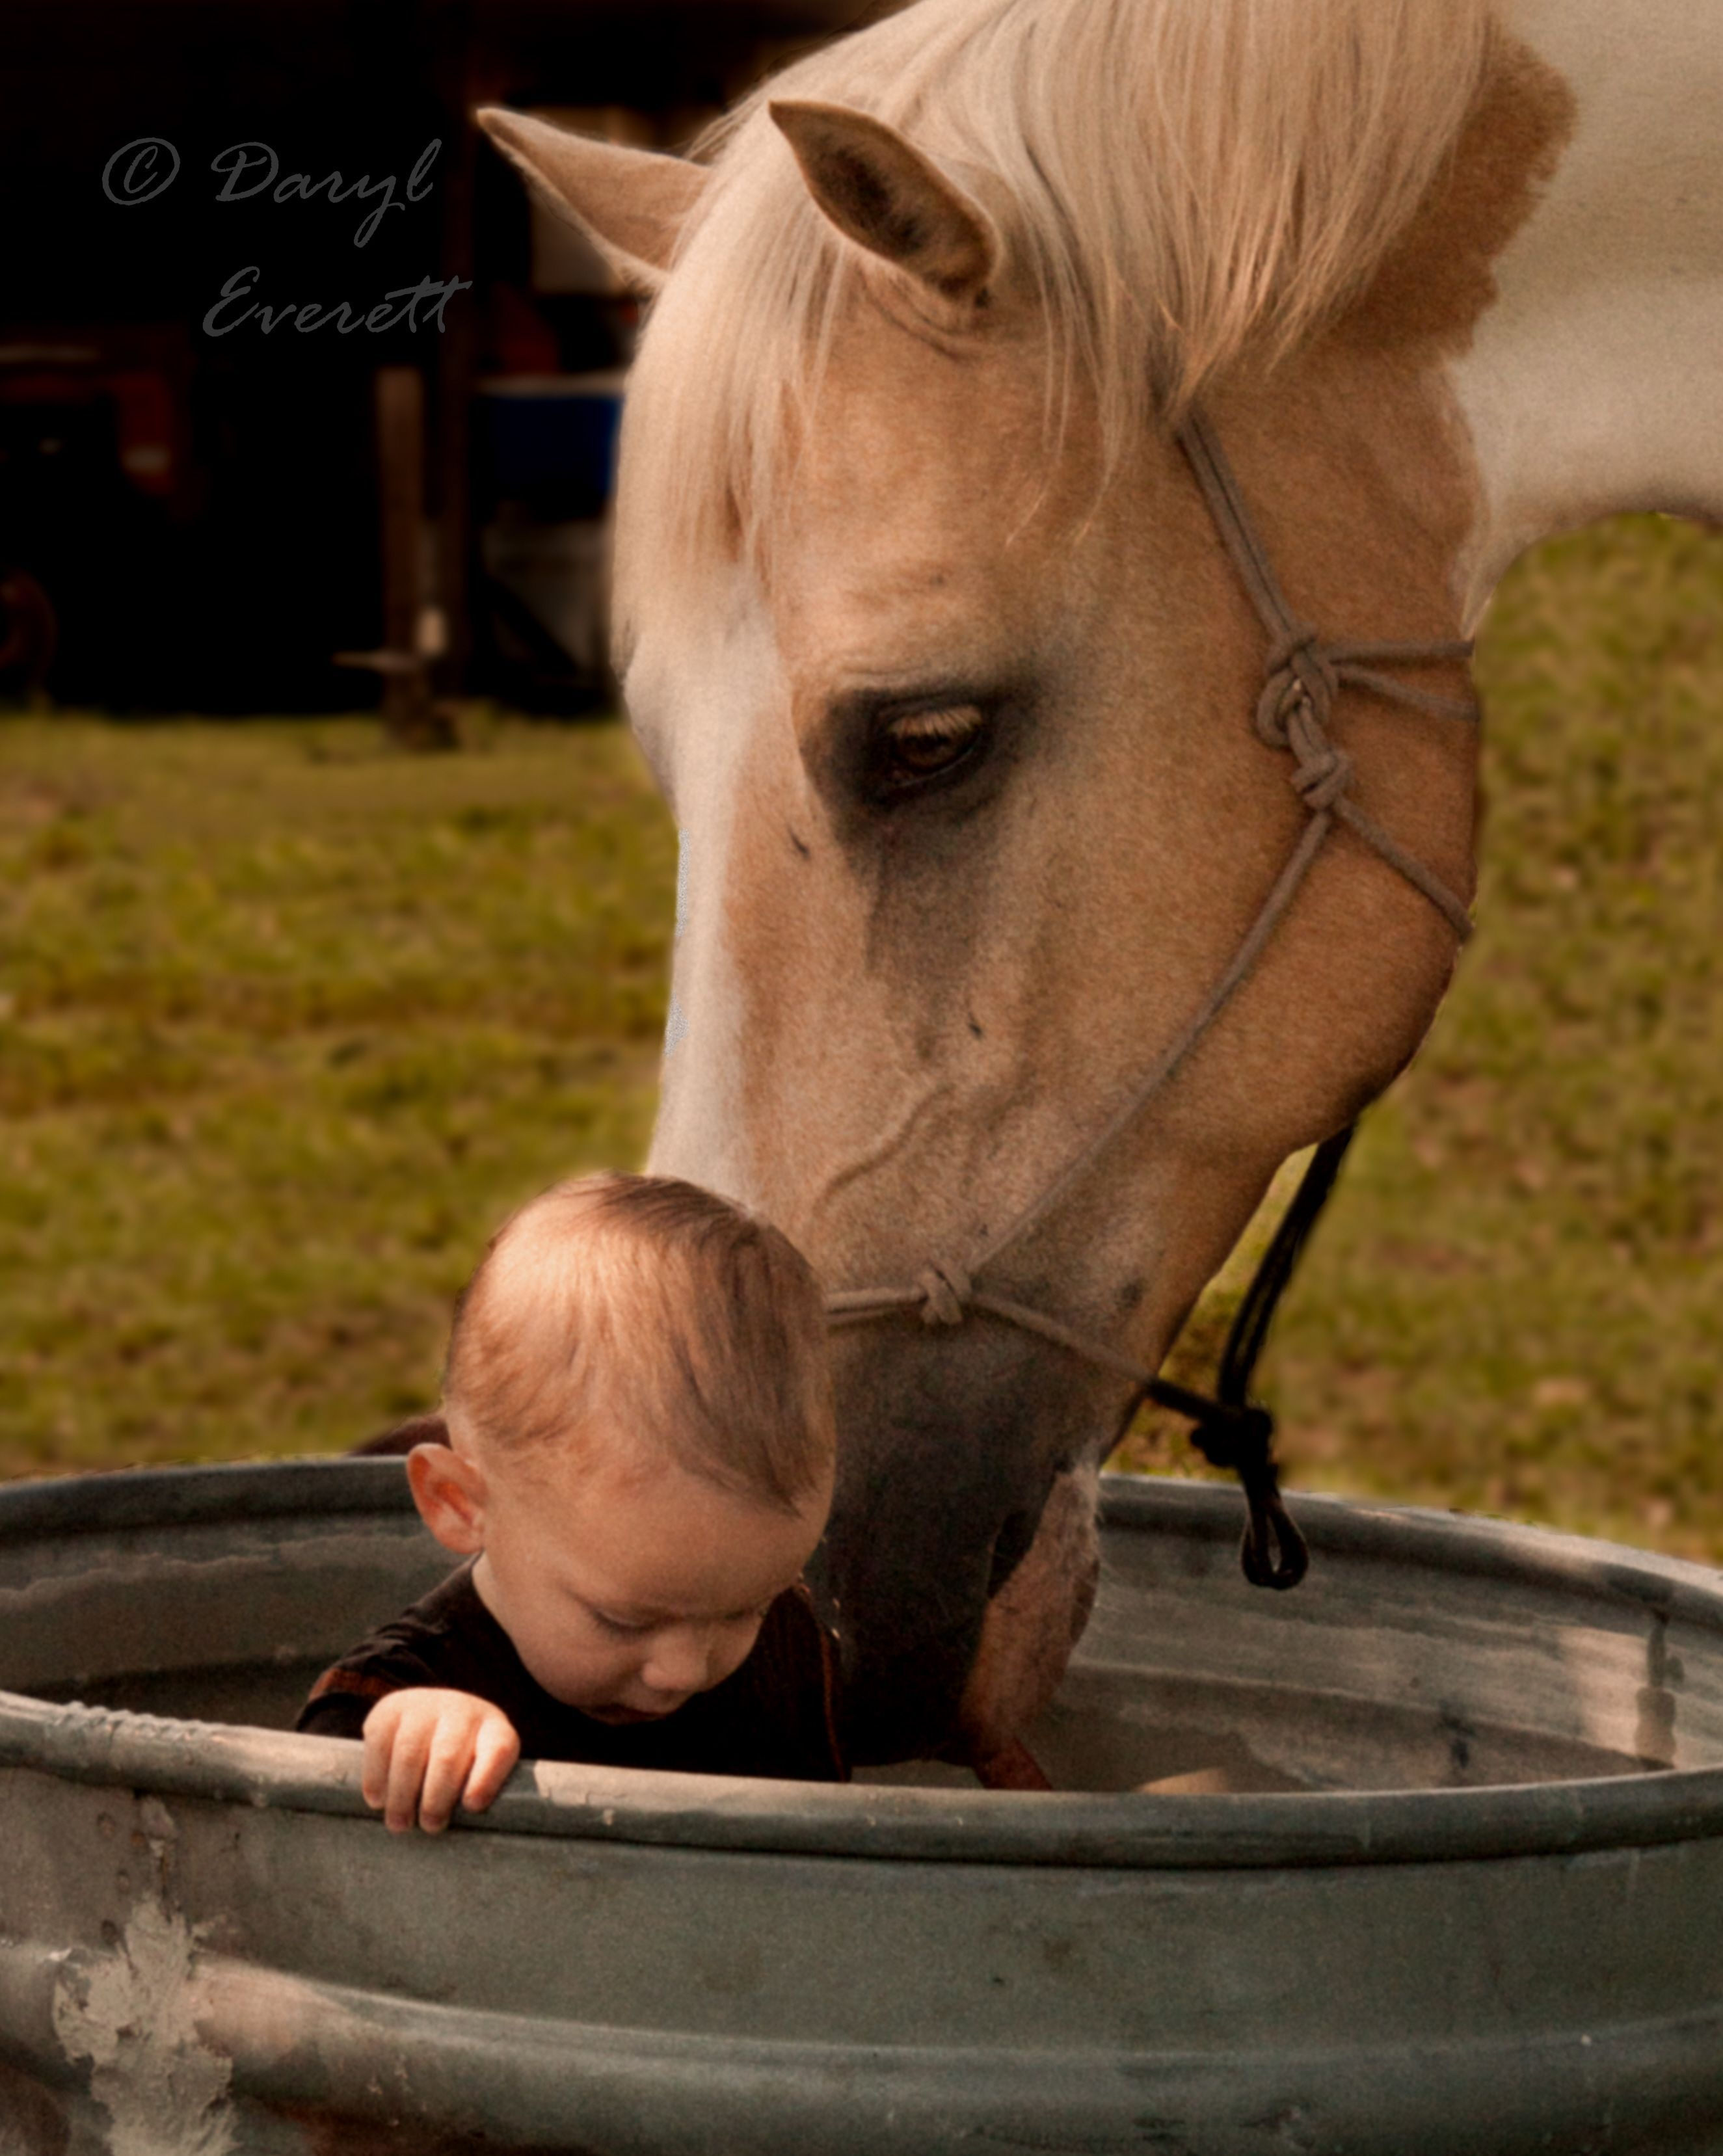 A boy and a horse {Jacksonville Child Photographer} #i'mthirsty I'm thirsty #i'mthirsty A boy and a horse {Jacksonville Child Photographer} #i'mthirsty I'm thirsty #i'mthirsty A boy and a horse {Jacksonville Child Photographer} #i'mthirsty I'm thirsty #i'mthirsty A boy and a horse {Jacksonville Child Photographer} #i'mthirsty I'm thirsty #imthirsty A boy and a horse {Jacksonville Child Photographer} #i'mthirsty I'm thirsty #i'mthirsty A boy and a horse {Jacksonville Child Photographer} #i'mthirs #imthirsty